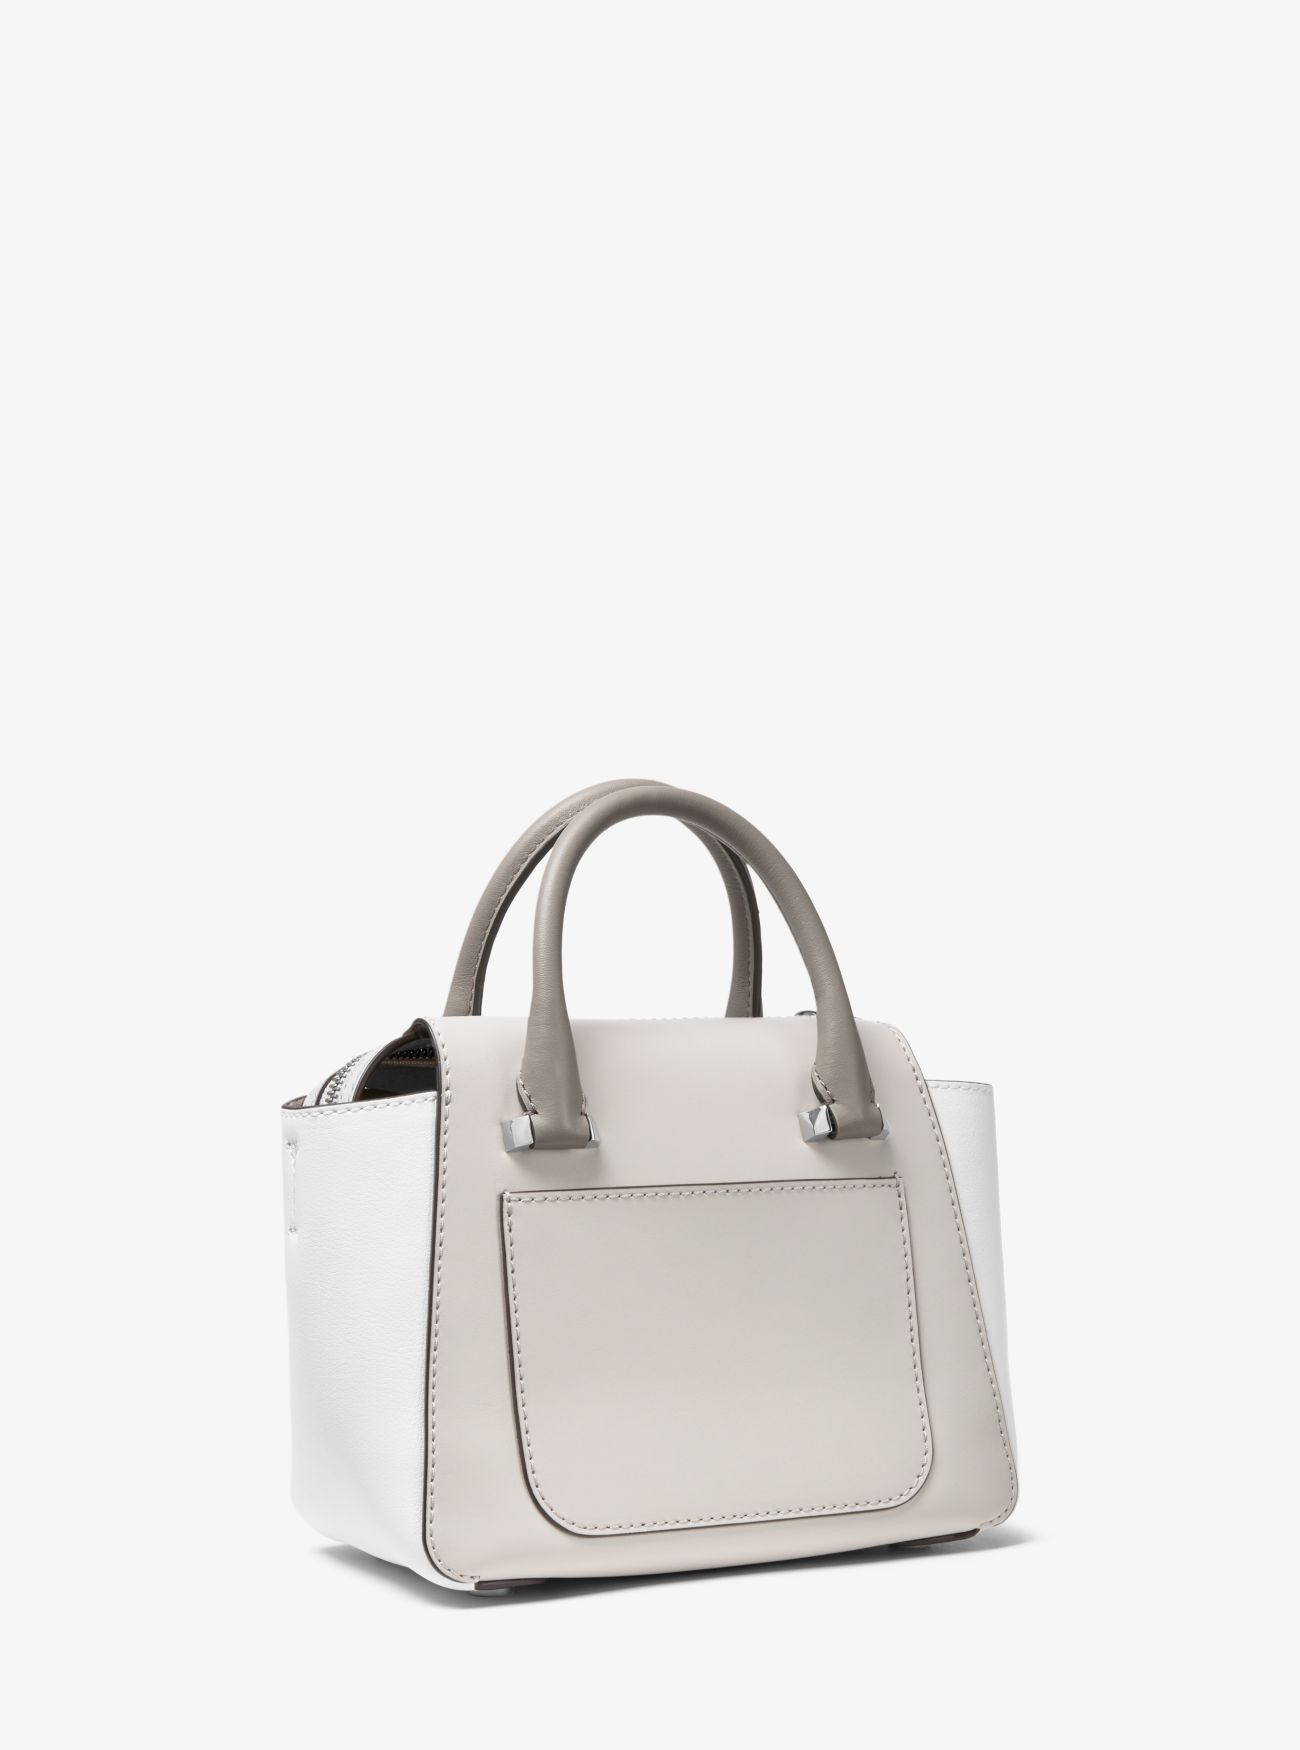 02a3c2523f6d0a Cheap Michael Kors Alu/Opt/Pgry Nolita Mini Color-Block Leather Satchel  Stockist